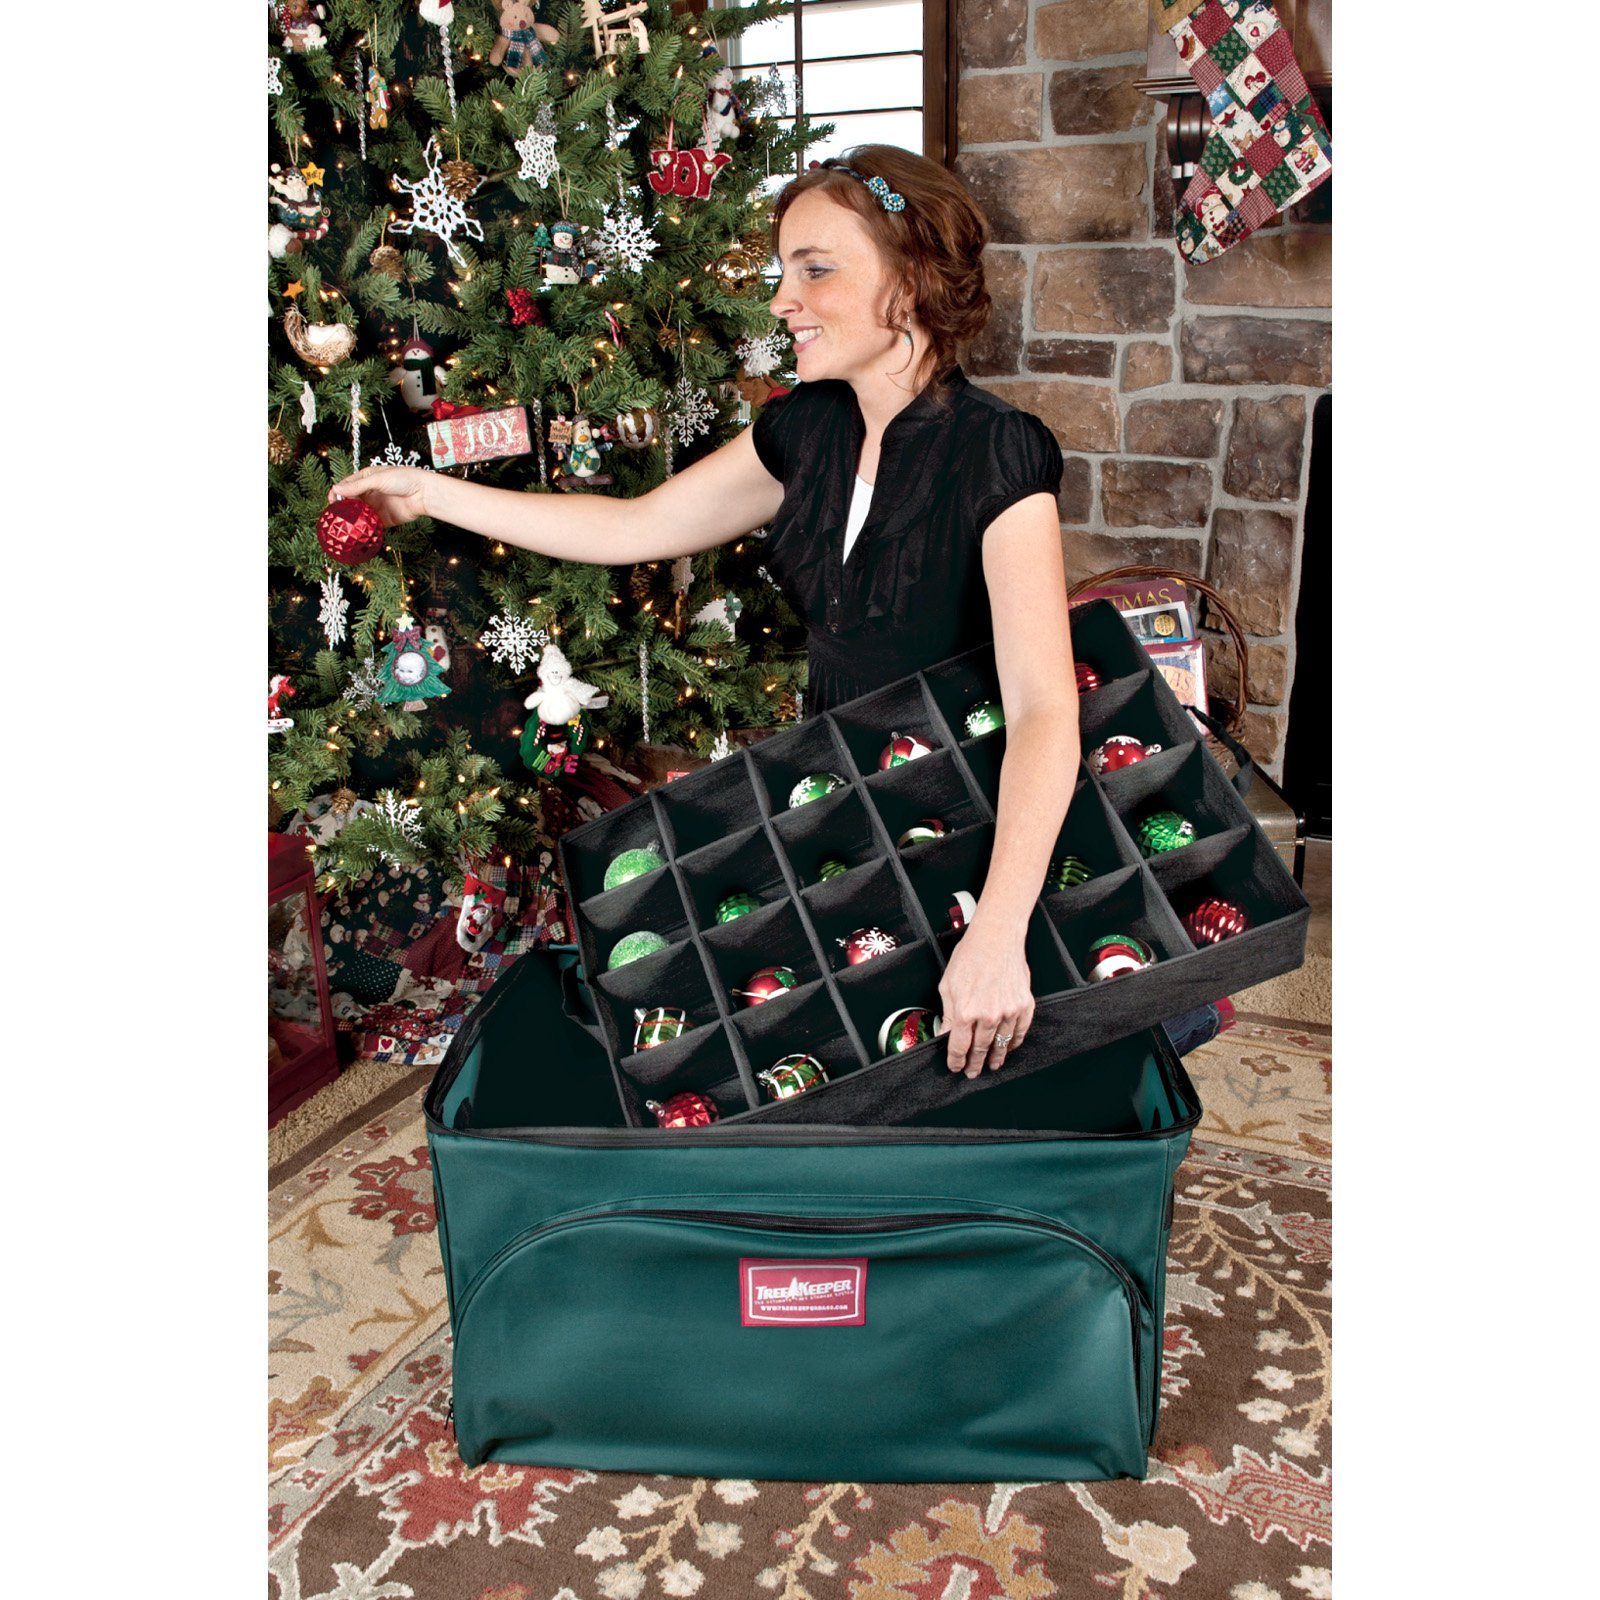 TreeKeeper 2 Tray Ornament Keeper Storage Bag with Front Pocket